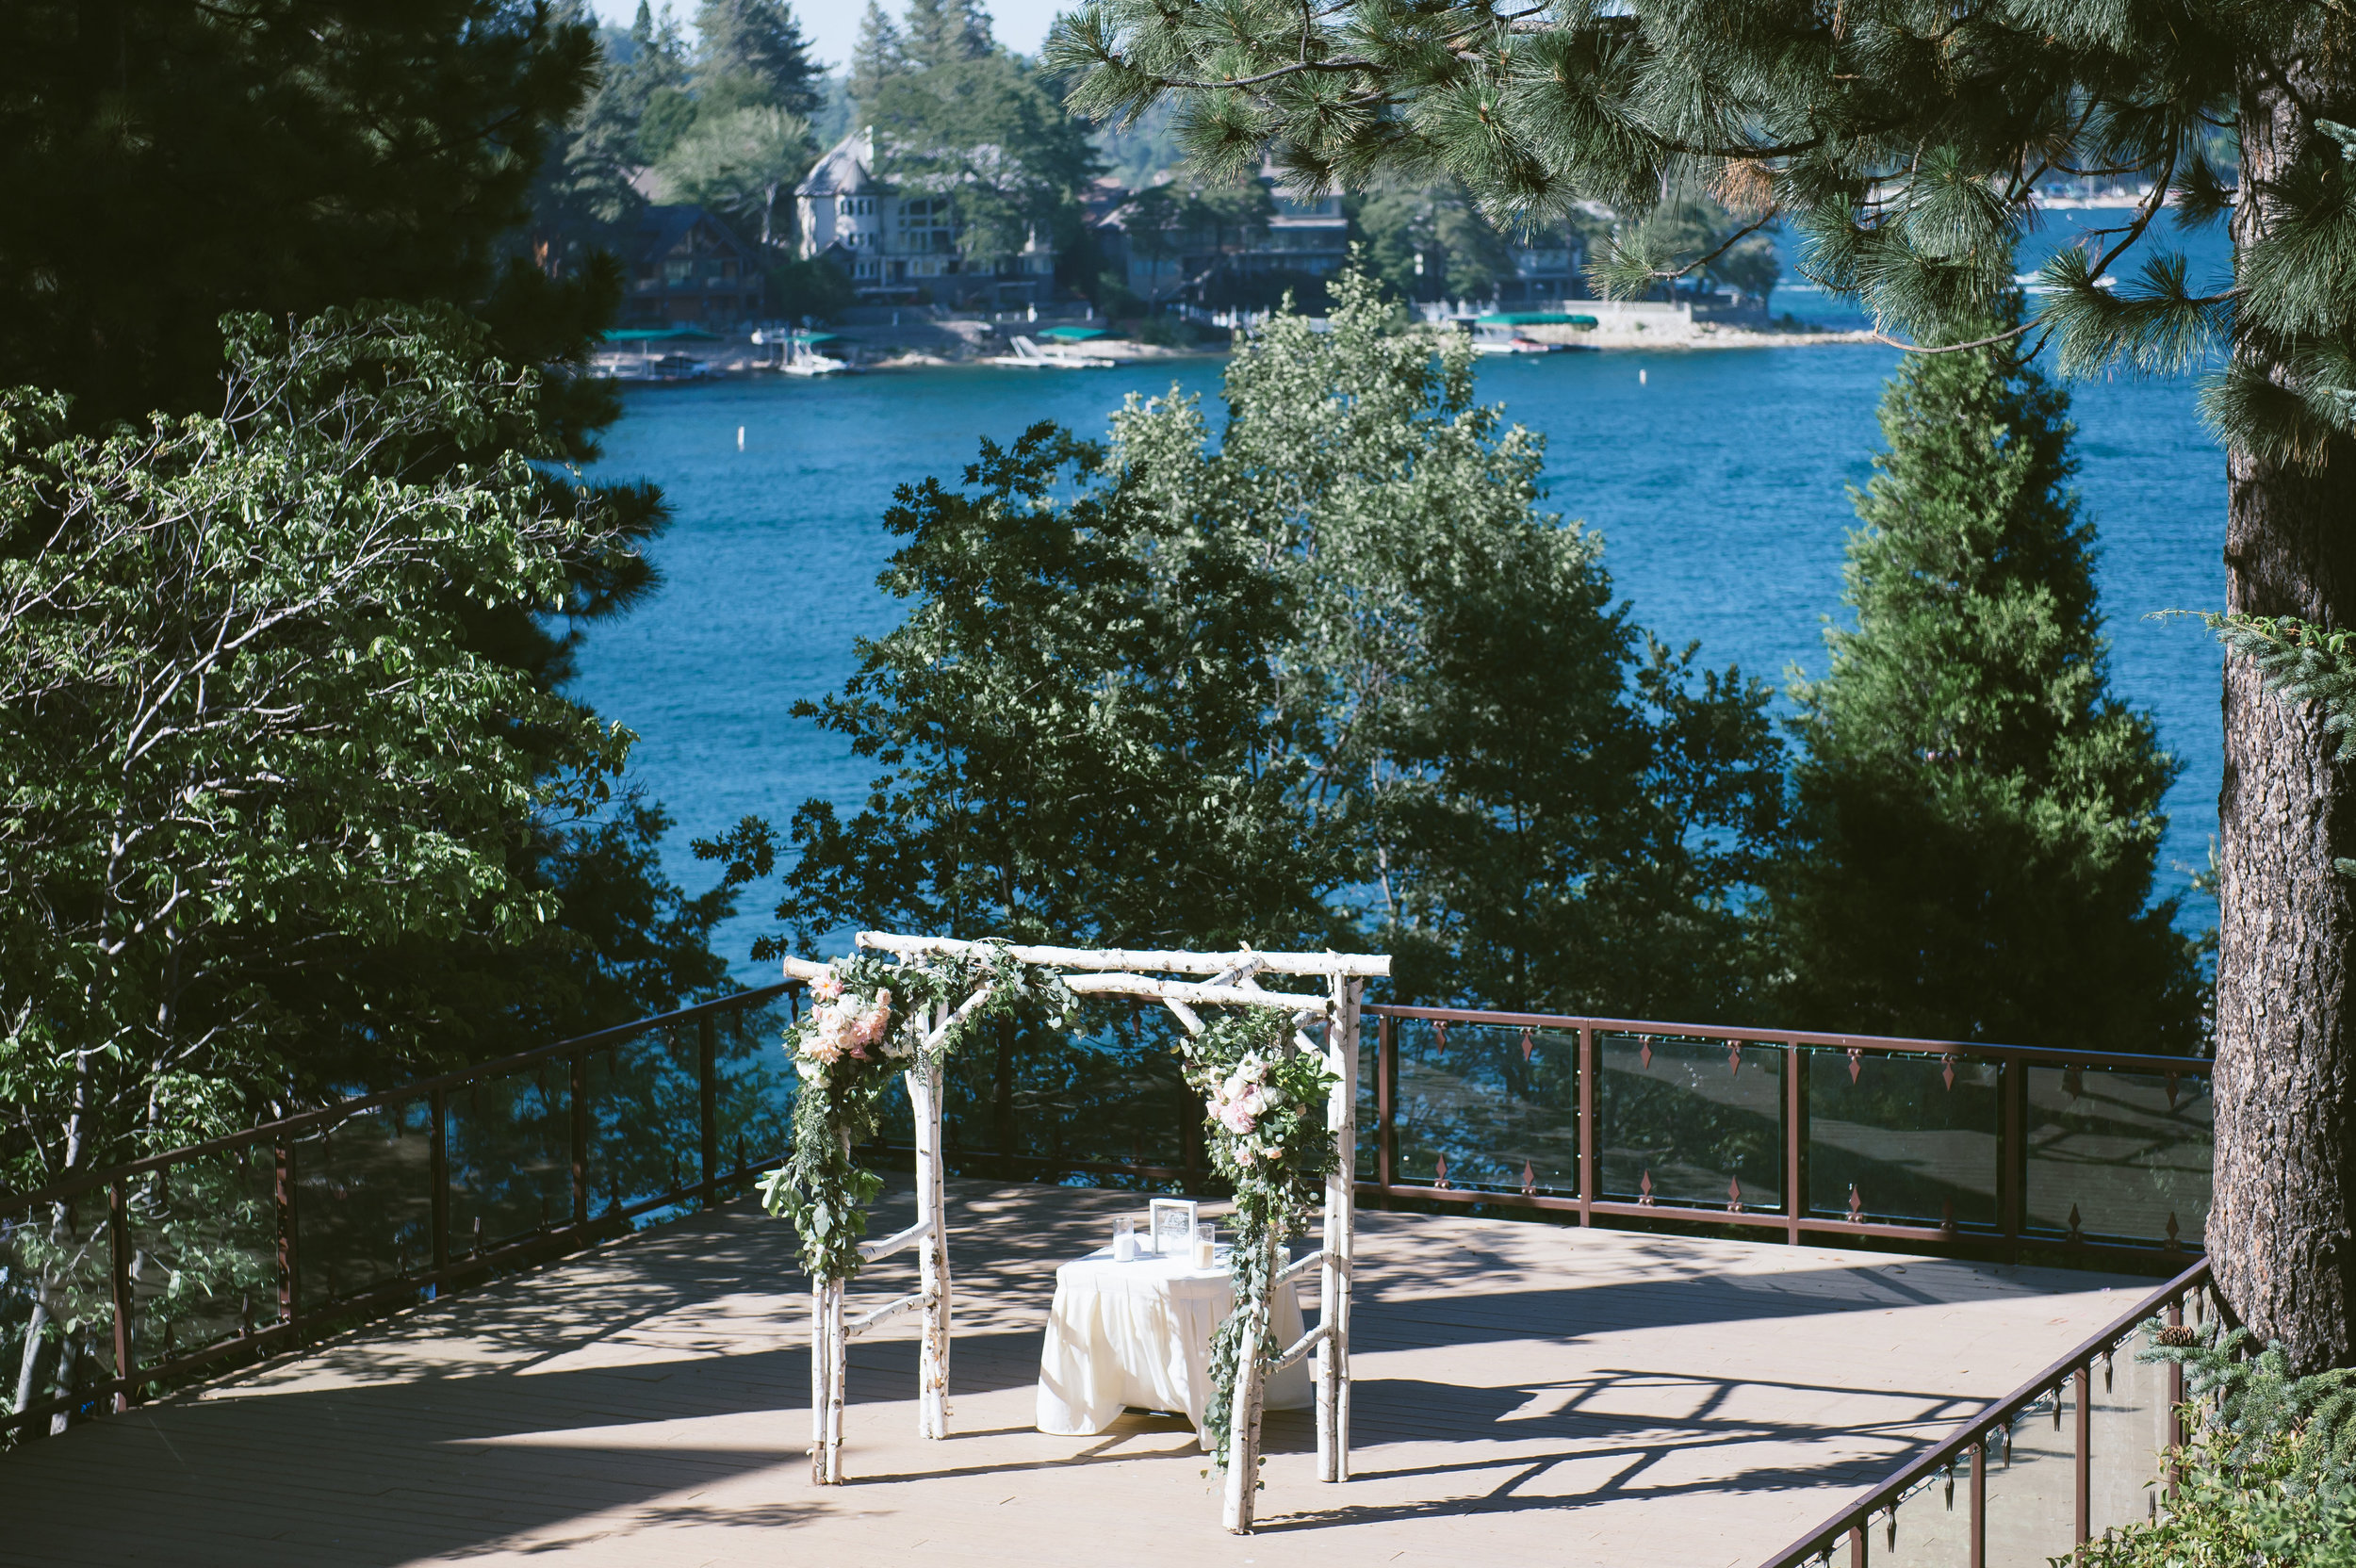 17Lake Arrowhead Resort Wedding Pictures.jpg